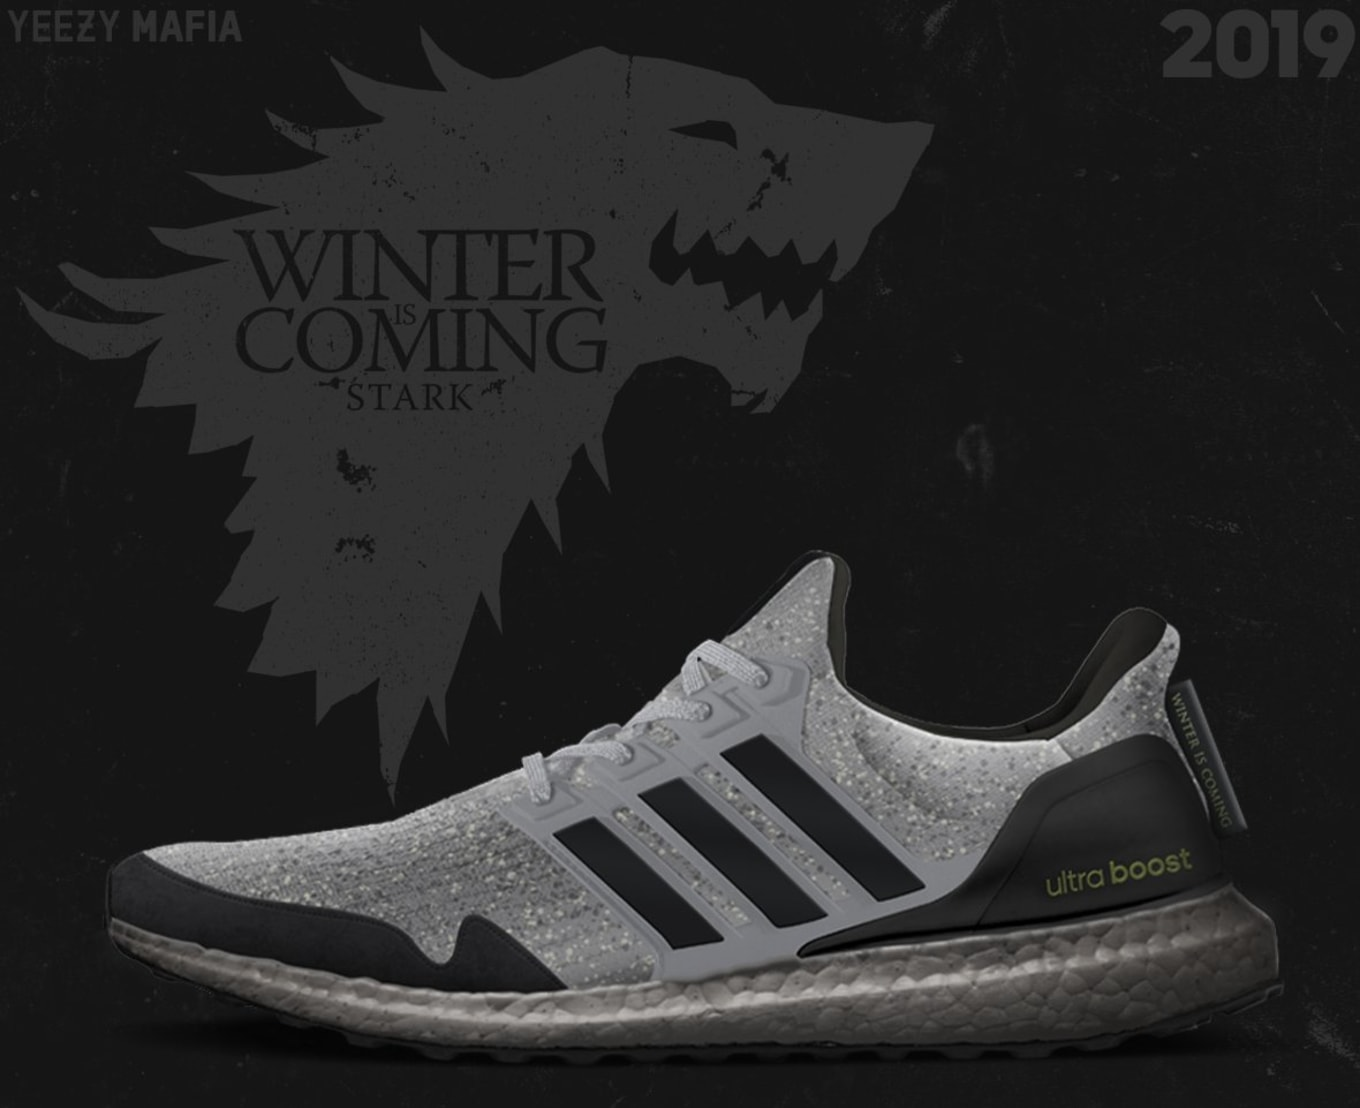 20e3891c9f52f Game of Thrones x Adidas Ultra Boost Sneaker Collaboration 2019 ...